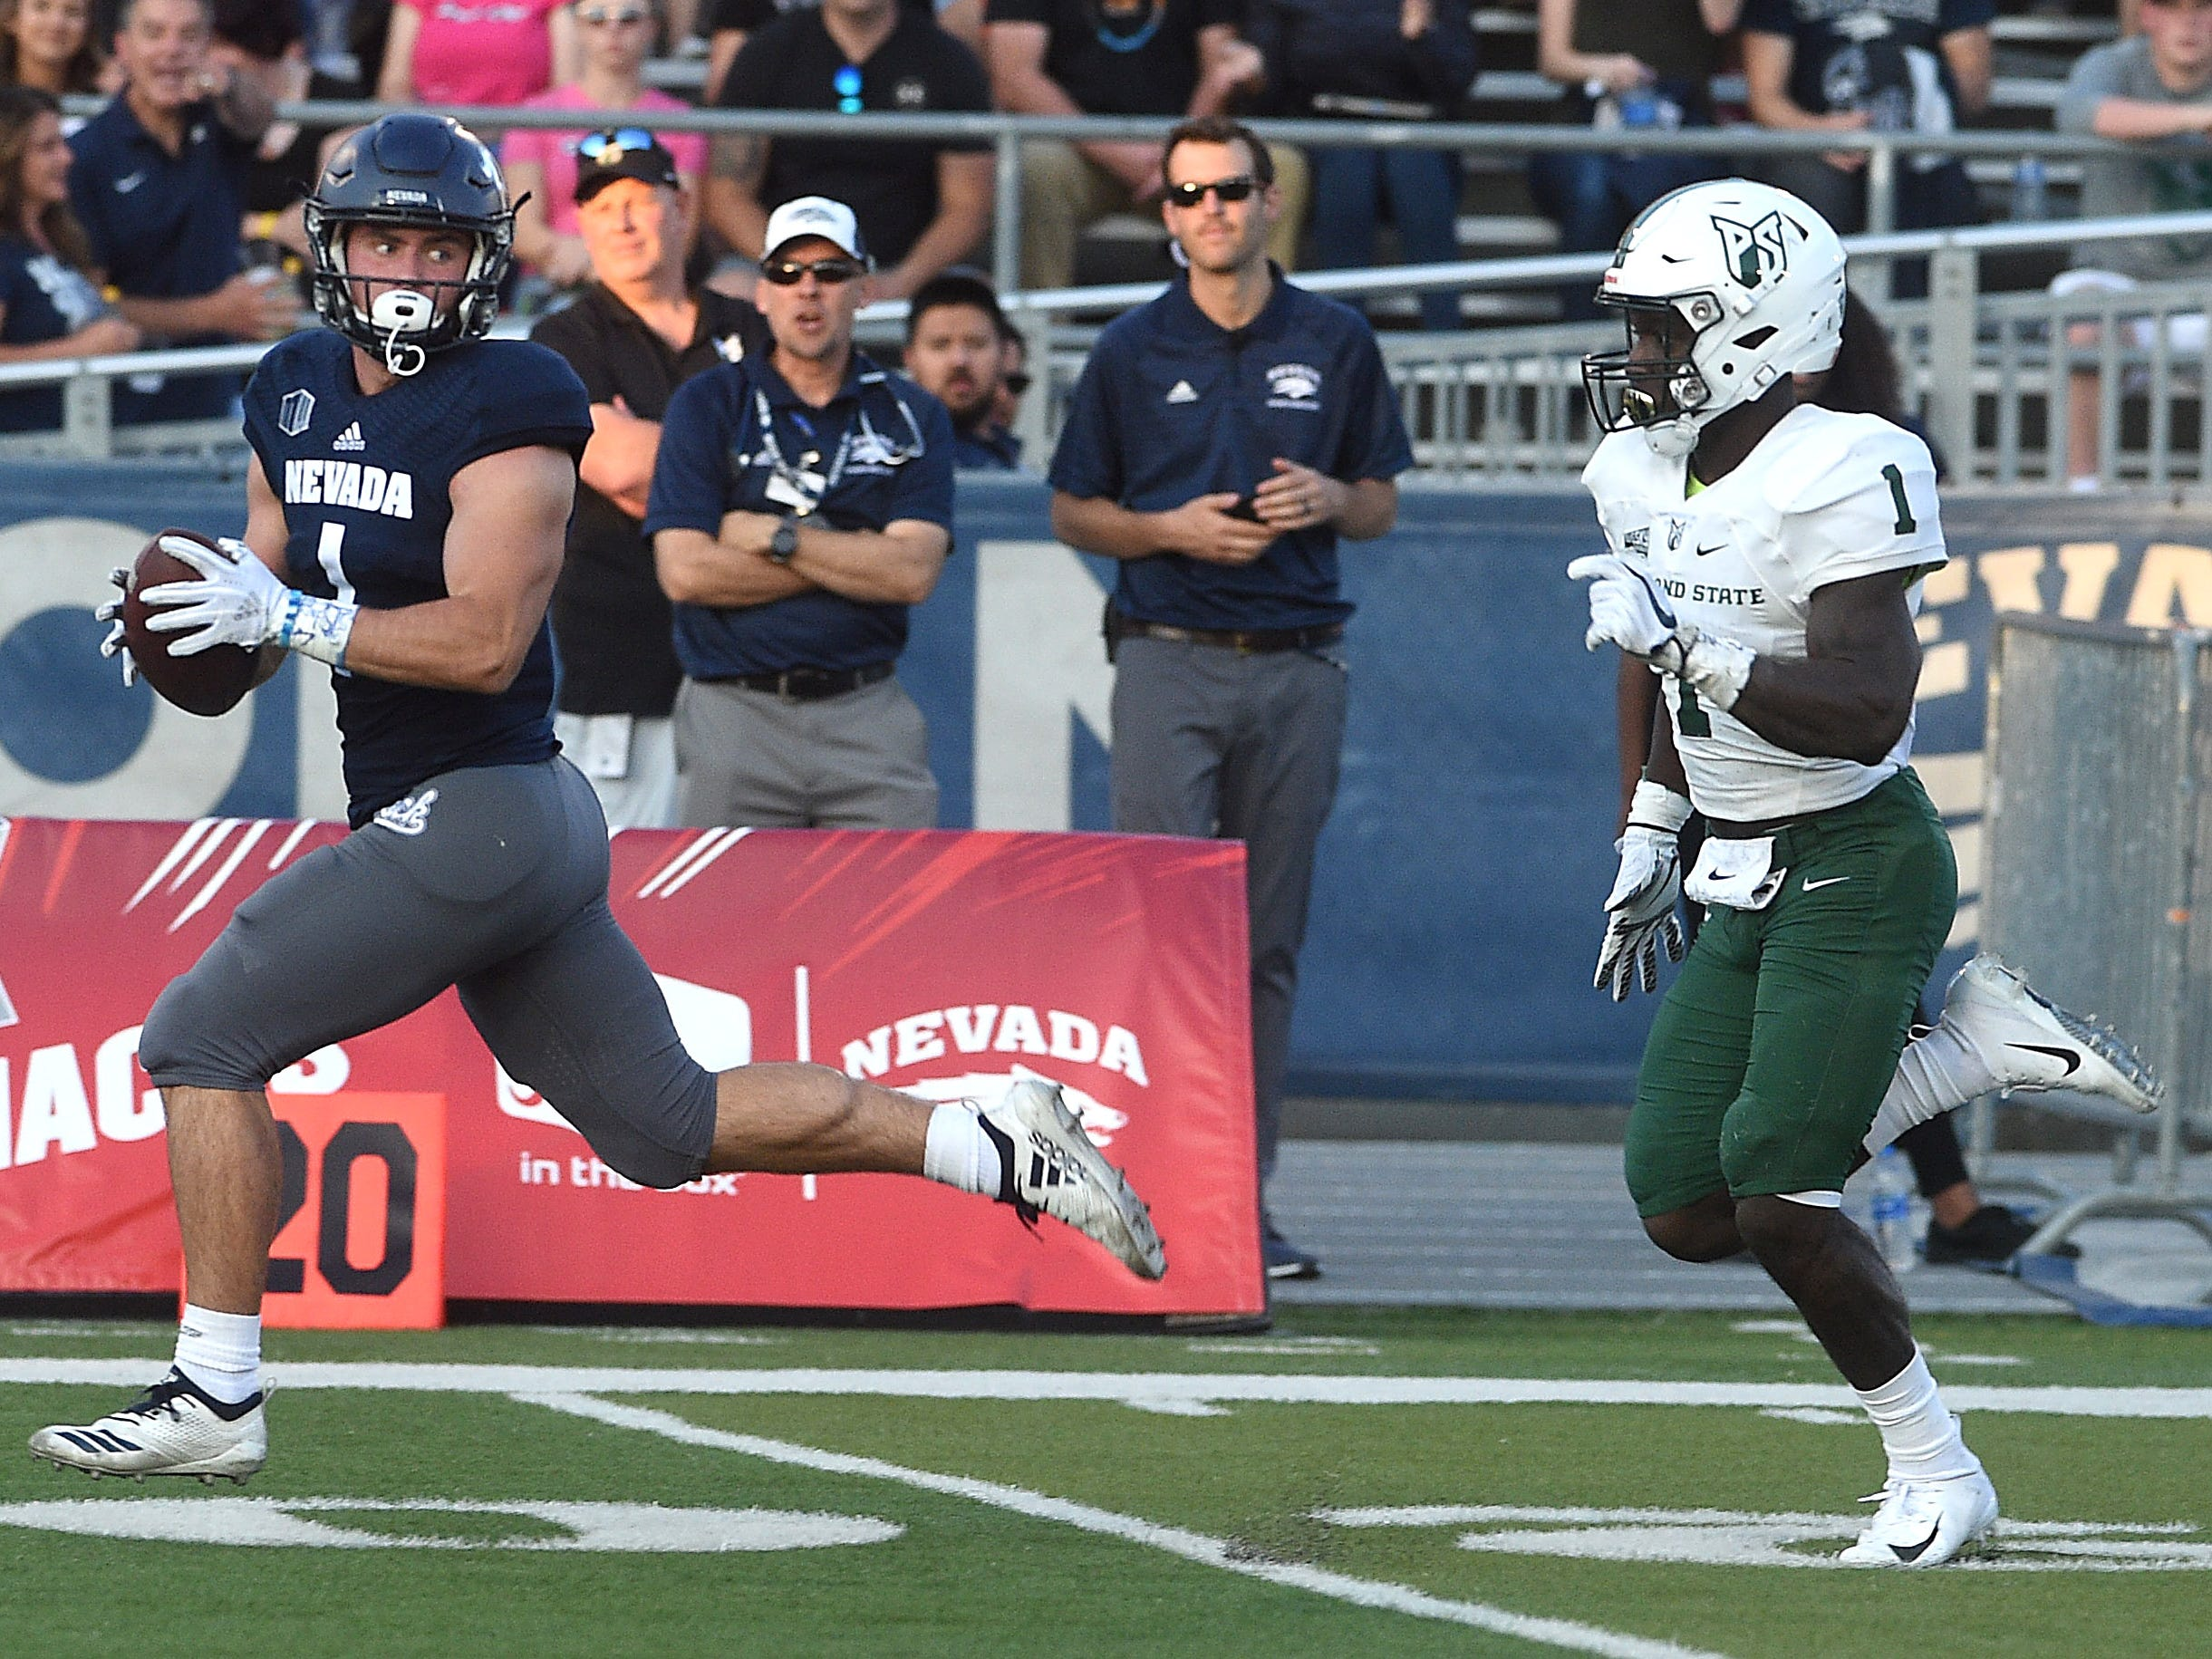 Nevada's McLane Mannix (1) looks back at Portland State's Romeo Gunt on his way to the end zone during their football game at Mackay Stadium in Reno on Aug. 31, 2018.